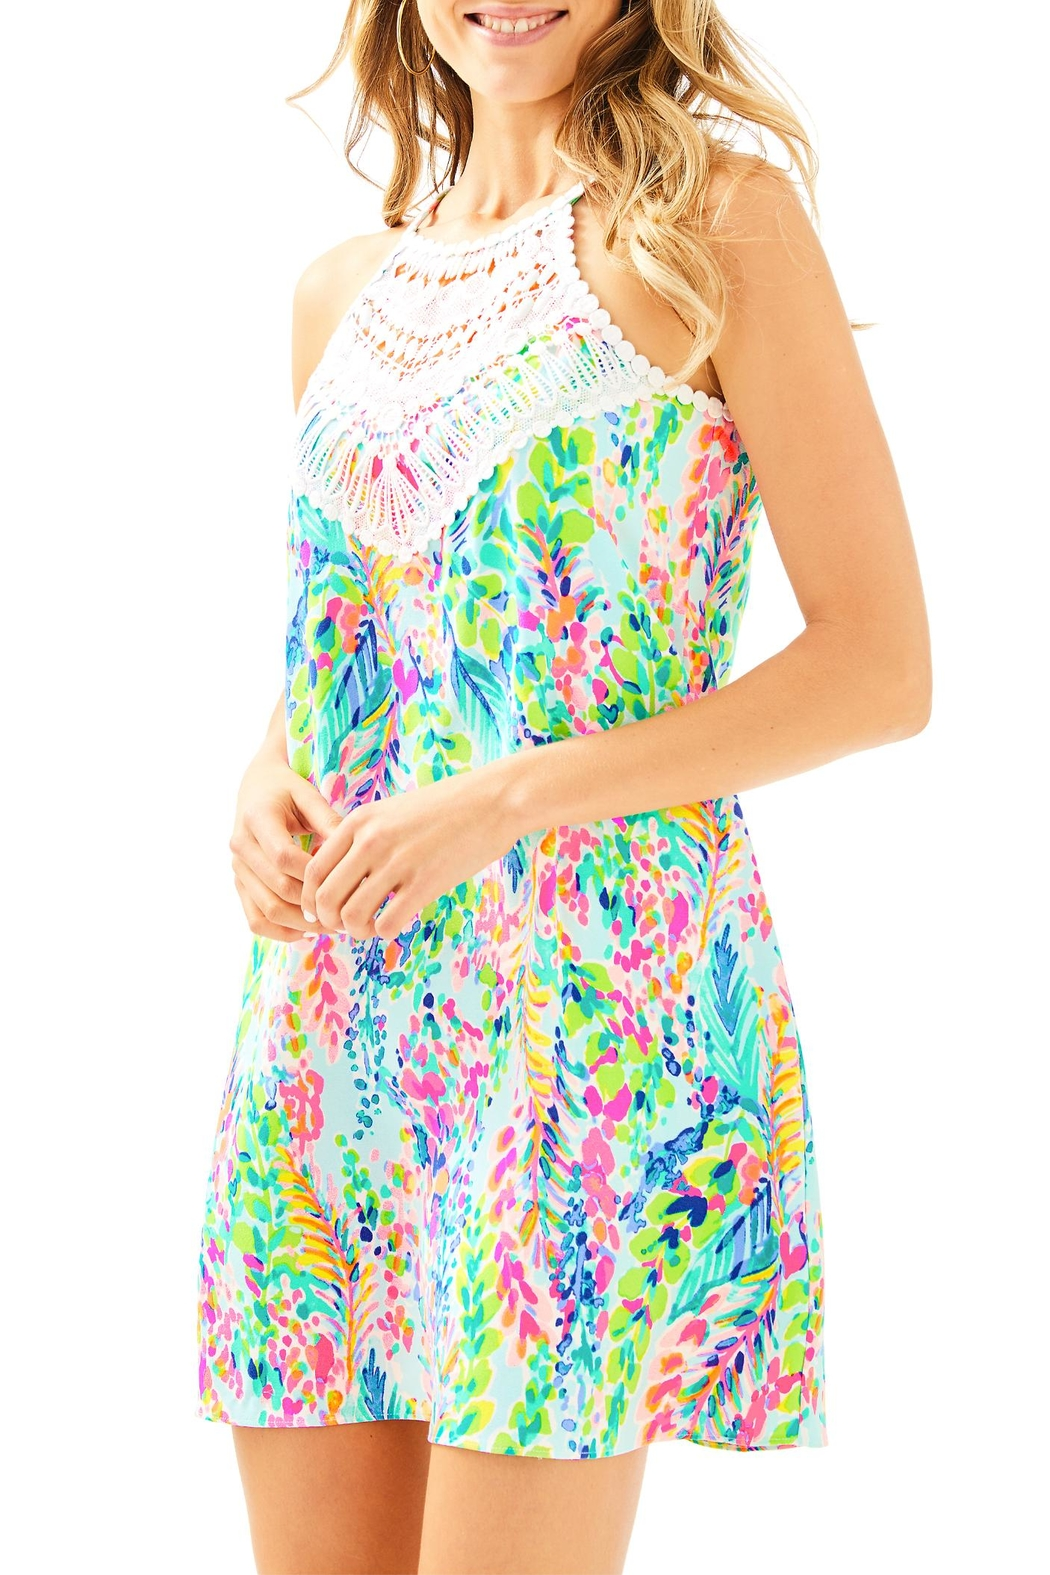 906489c270b7c6 Lilly Pulitzer Pearl Shift Dress from Sandestin Golf and Beach ...